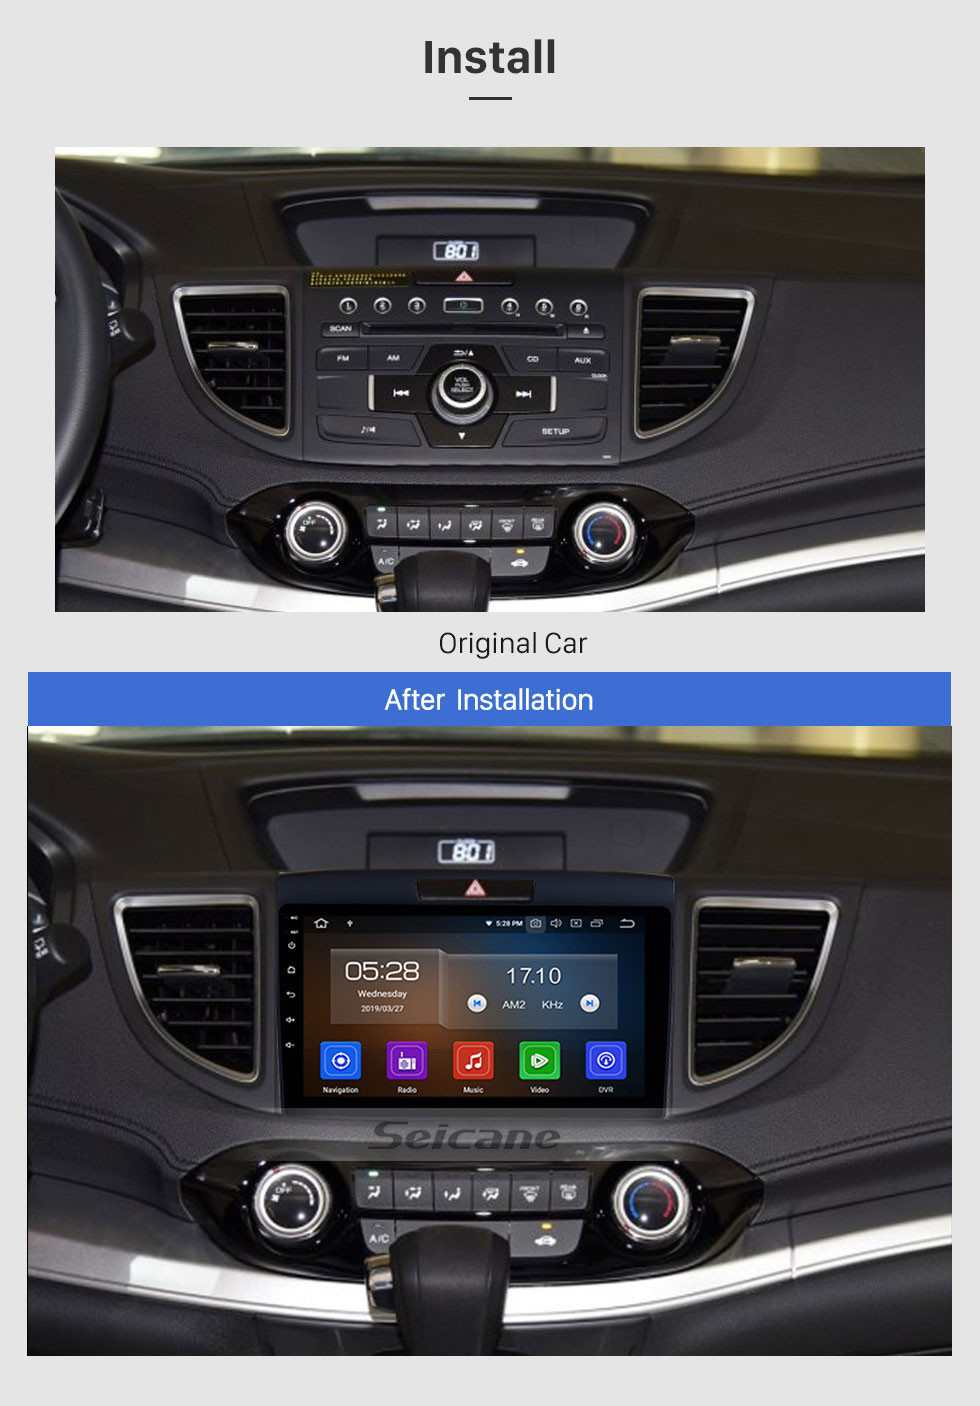 Seicane 9 inch 2011 2012 2013 2014 2015 Honda CRV Android 10.0 D Touchscreen Radio GPS Navigation System Support Bluetooth 3G/4G Wifi Mirror Link OBD2 DAB+ Backup camera